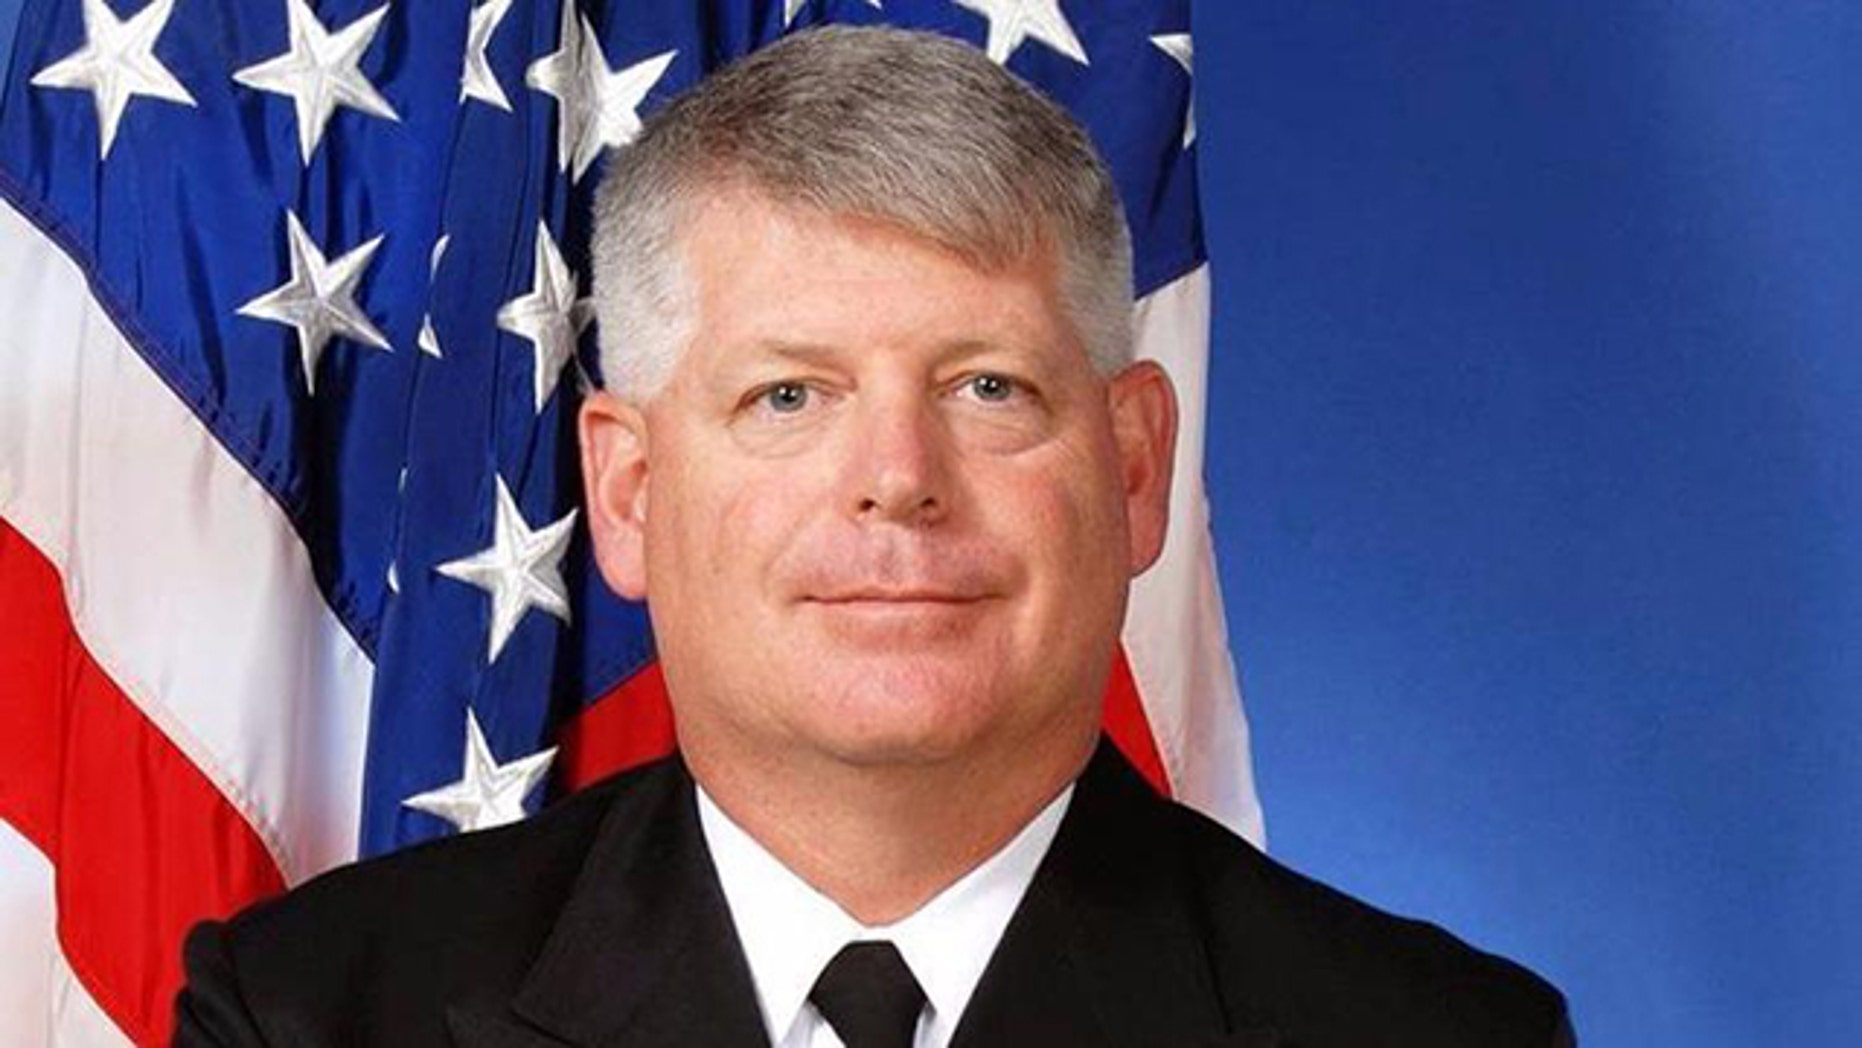 U.S. Navy Rear Admiral Robert Gilbeau is seen in this undated photo